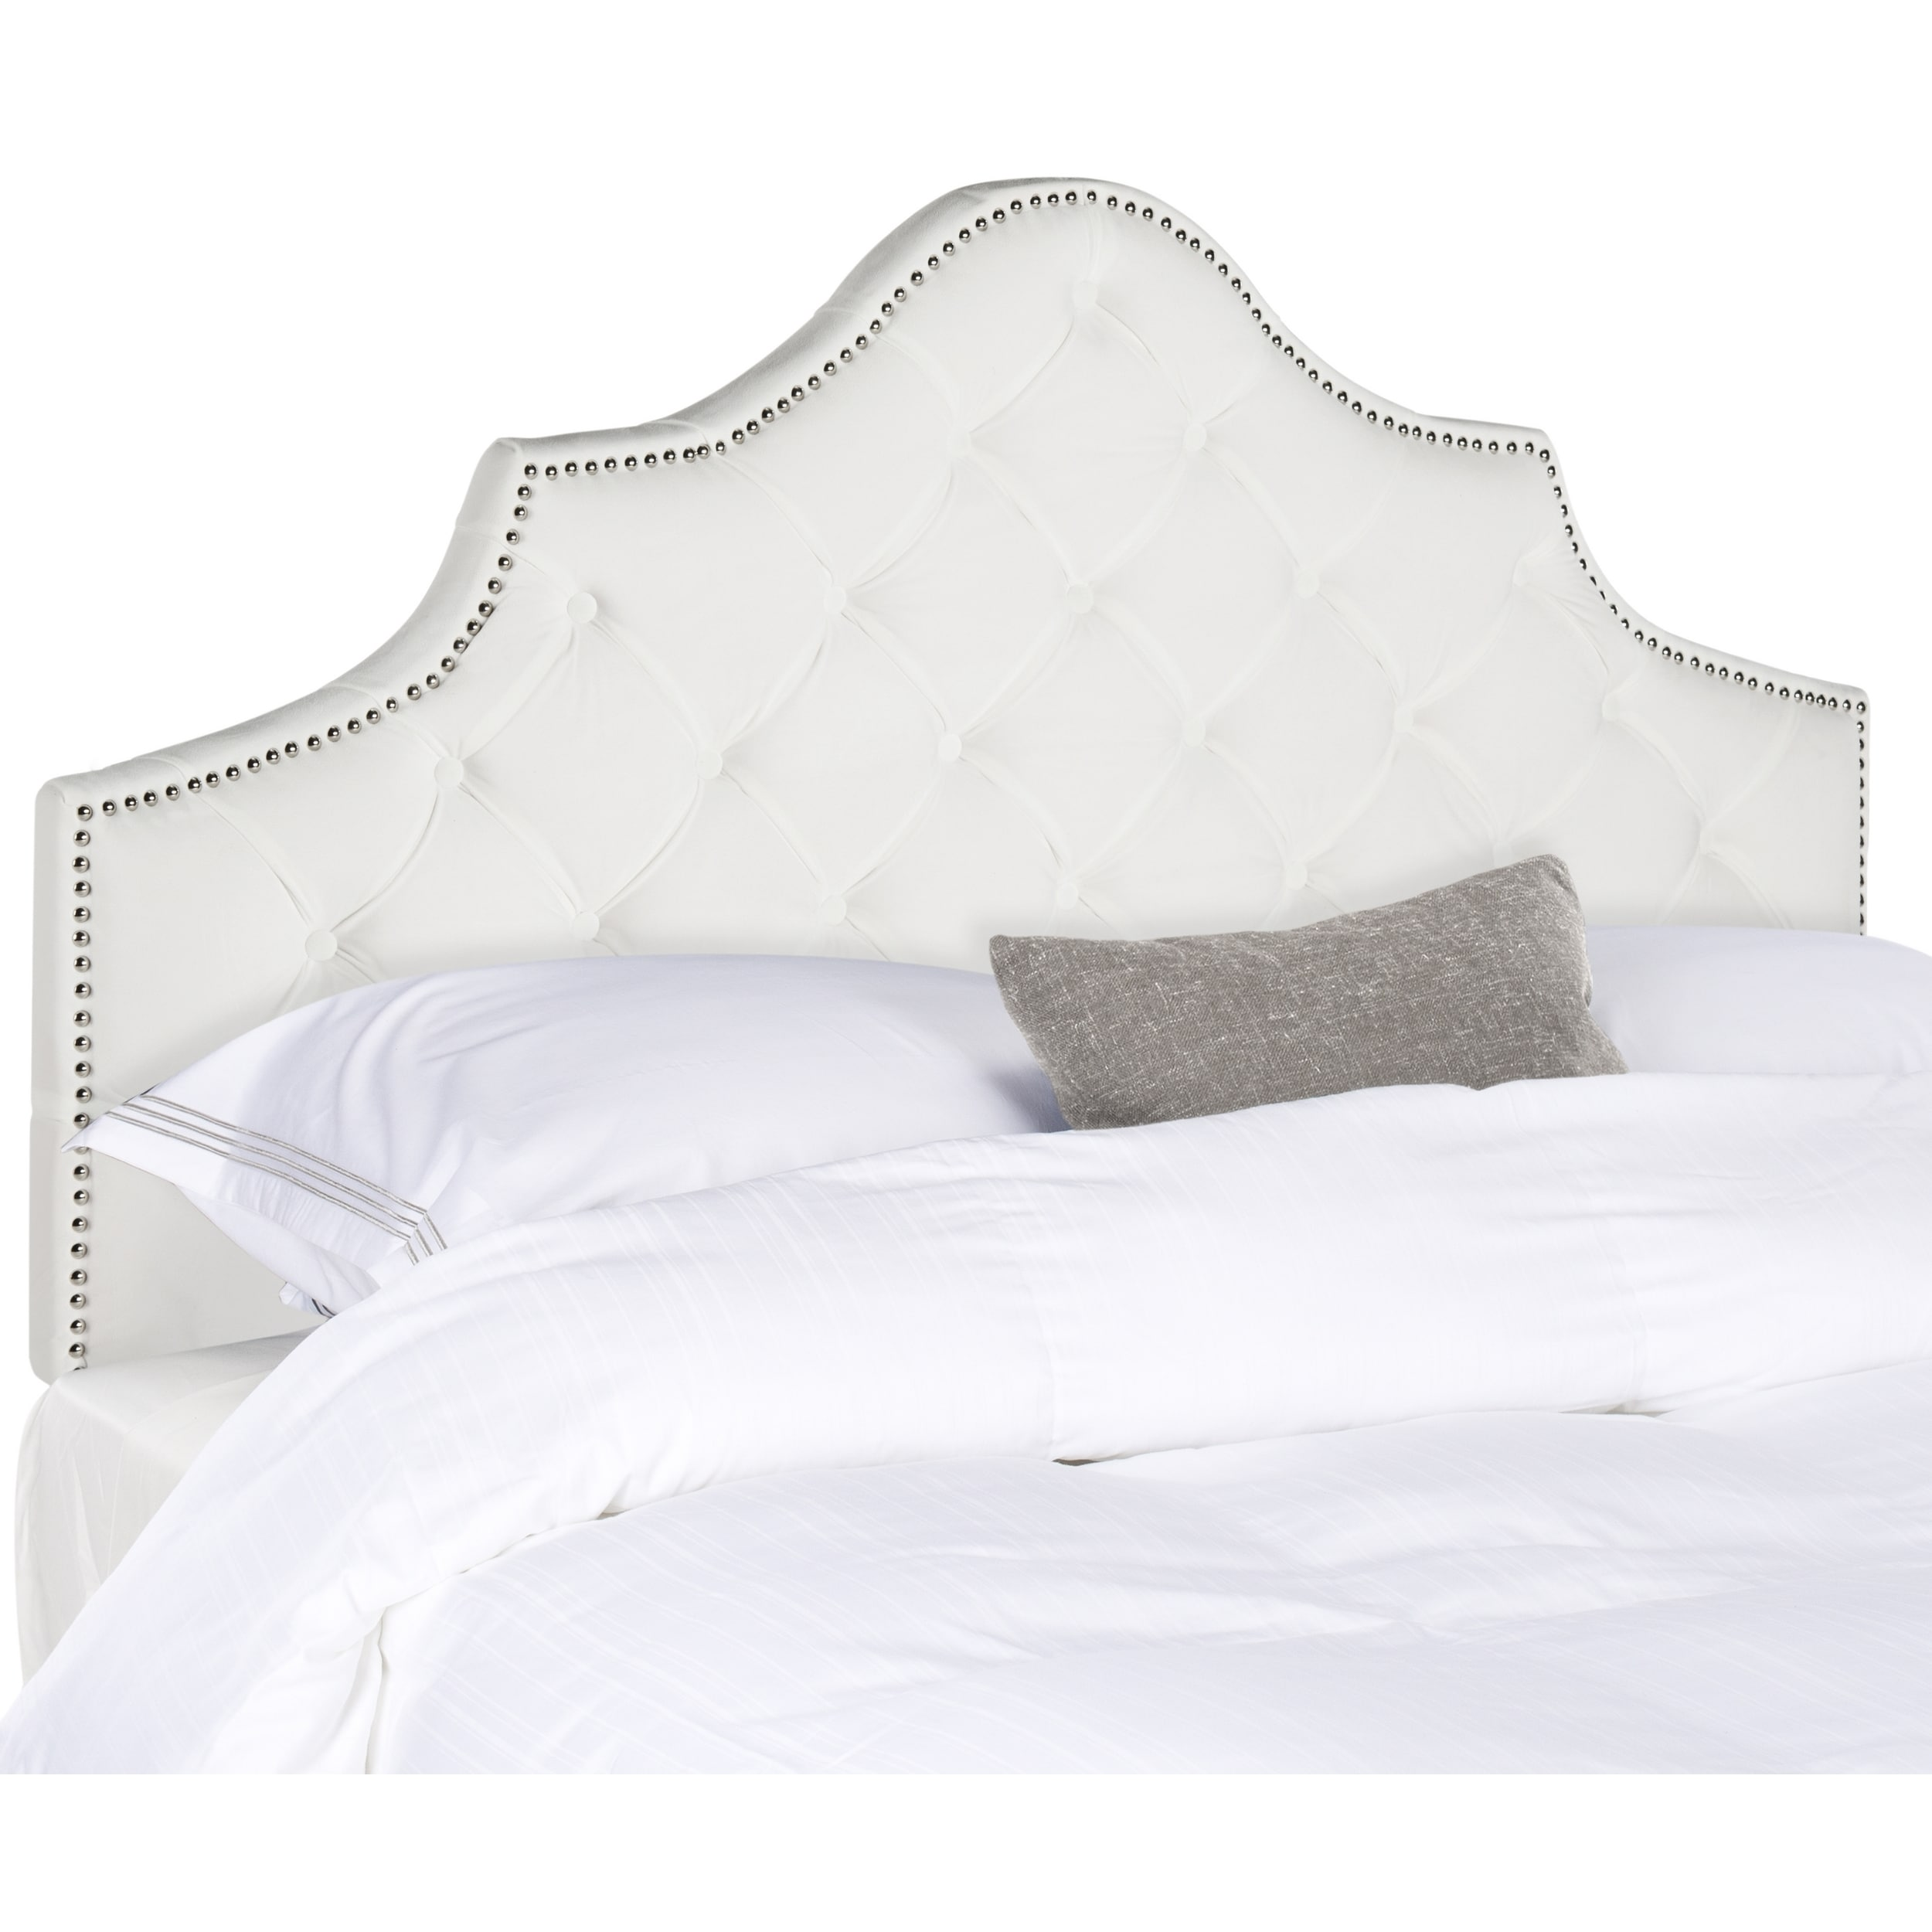 how kelley super calming size make a to upholstered neutral with headboard tall headboards bedroom com and nan tufted white update master senalka king